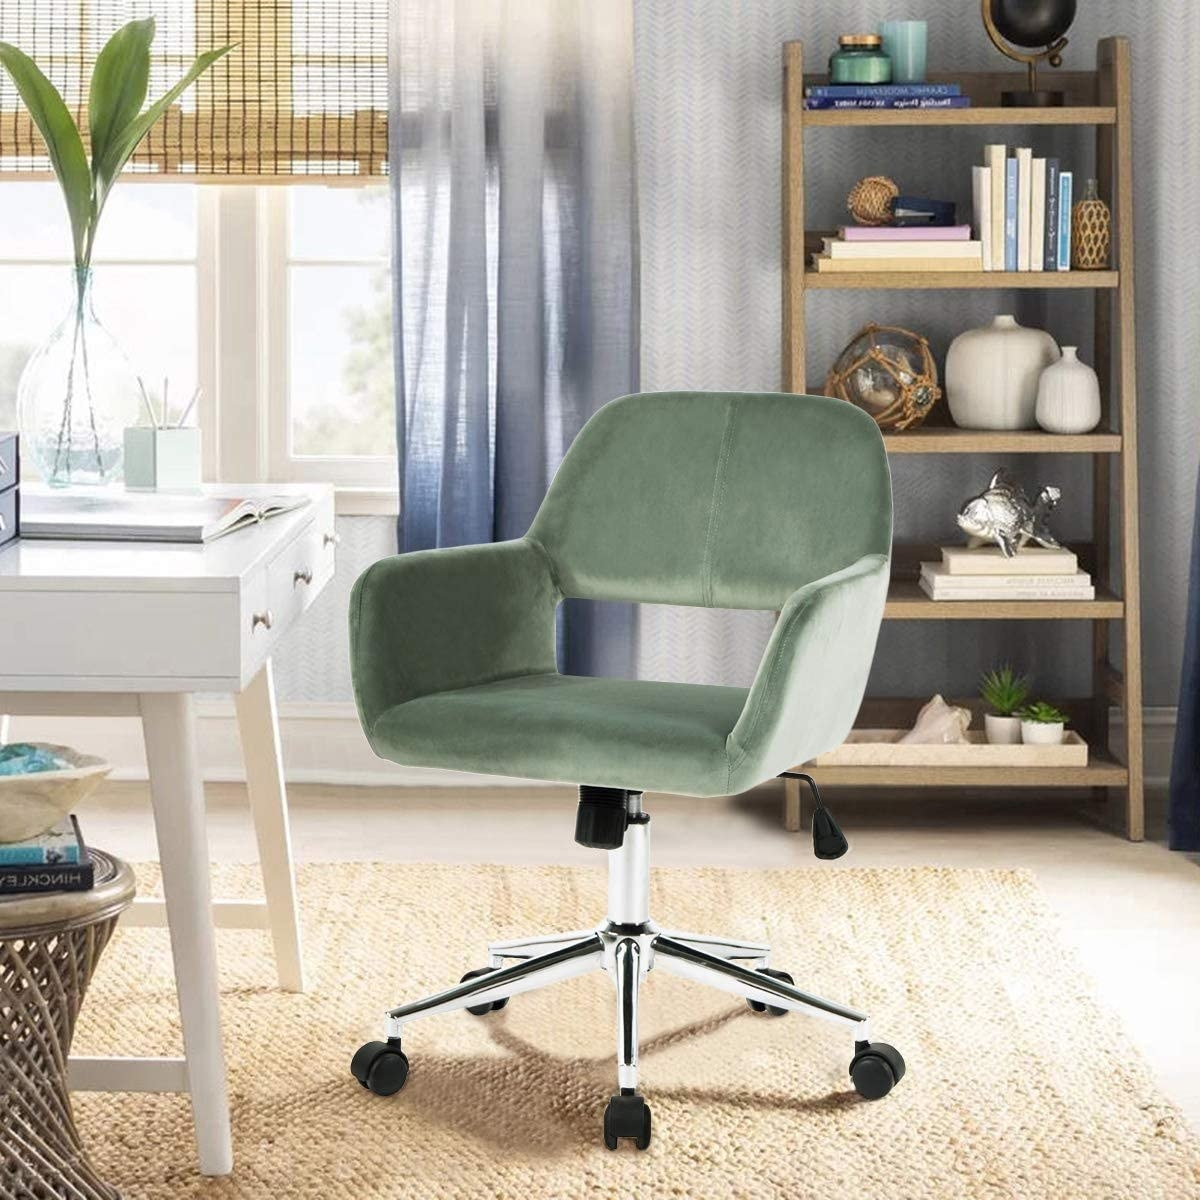 The rolling task chair in cactus green